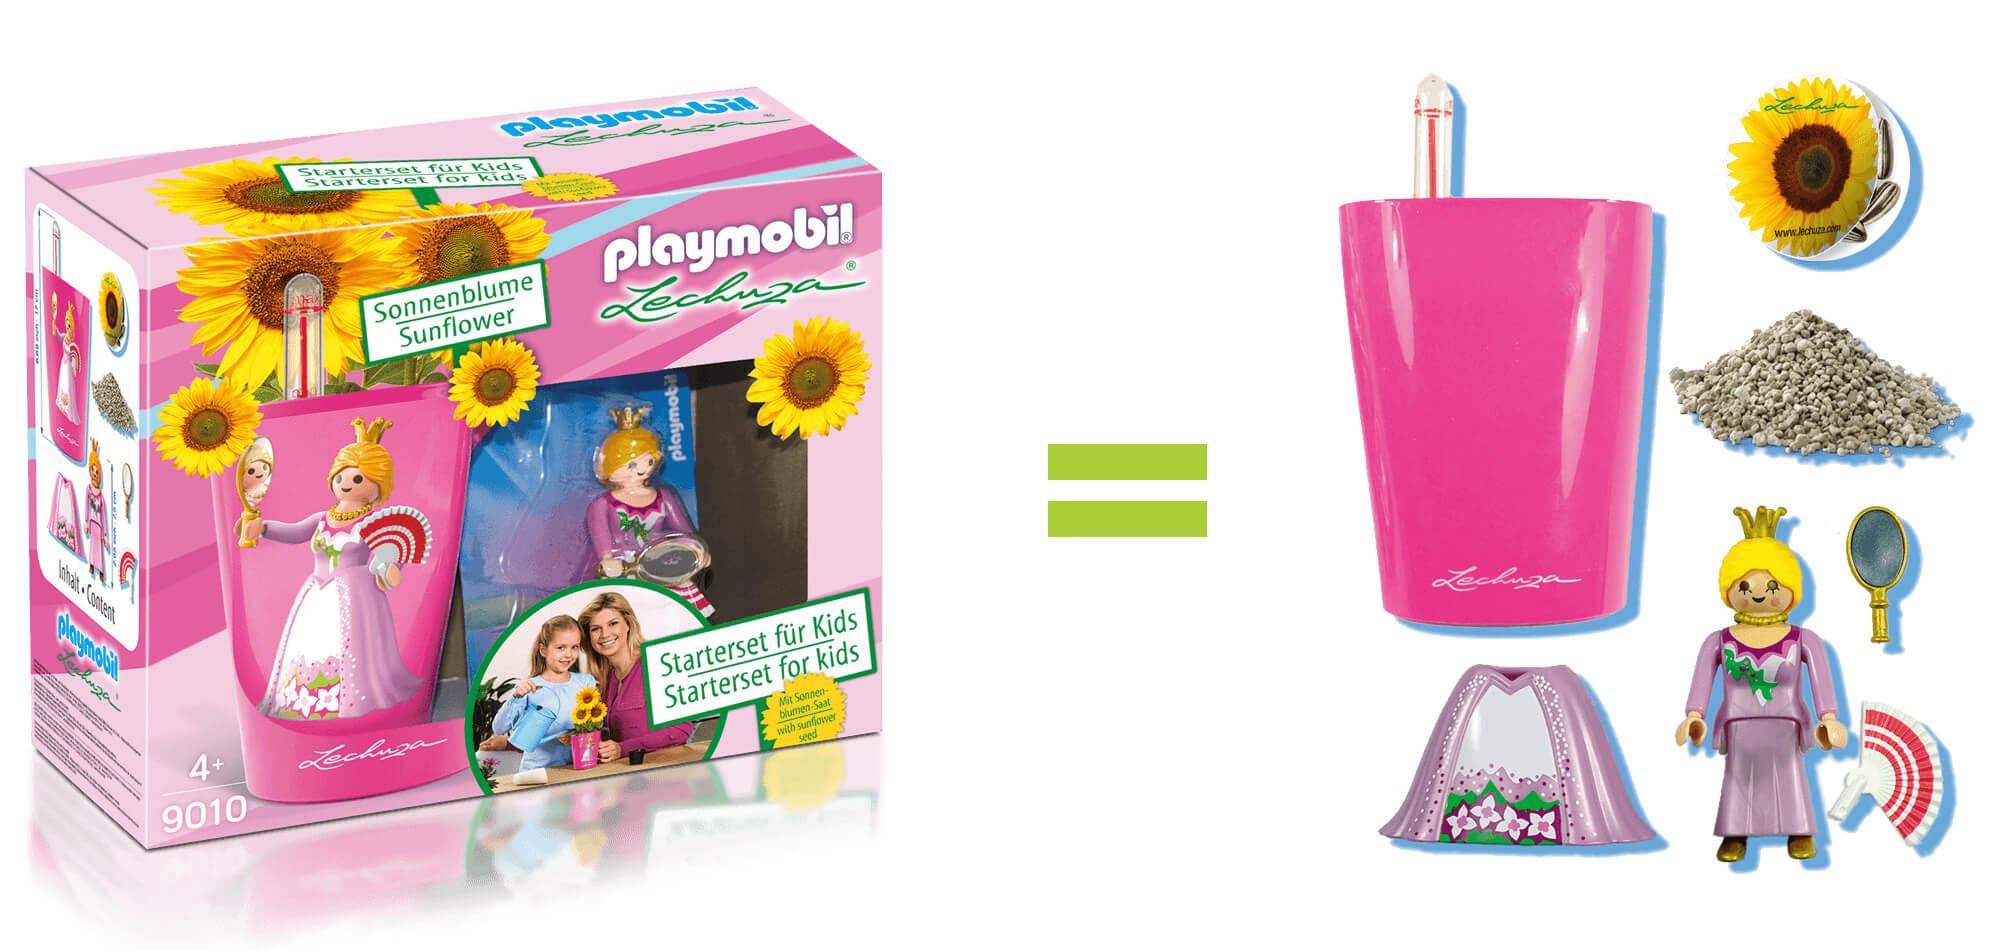 le_starter-set-fuer-kids-prinzessin_cp_image_aio